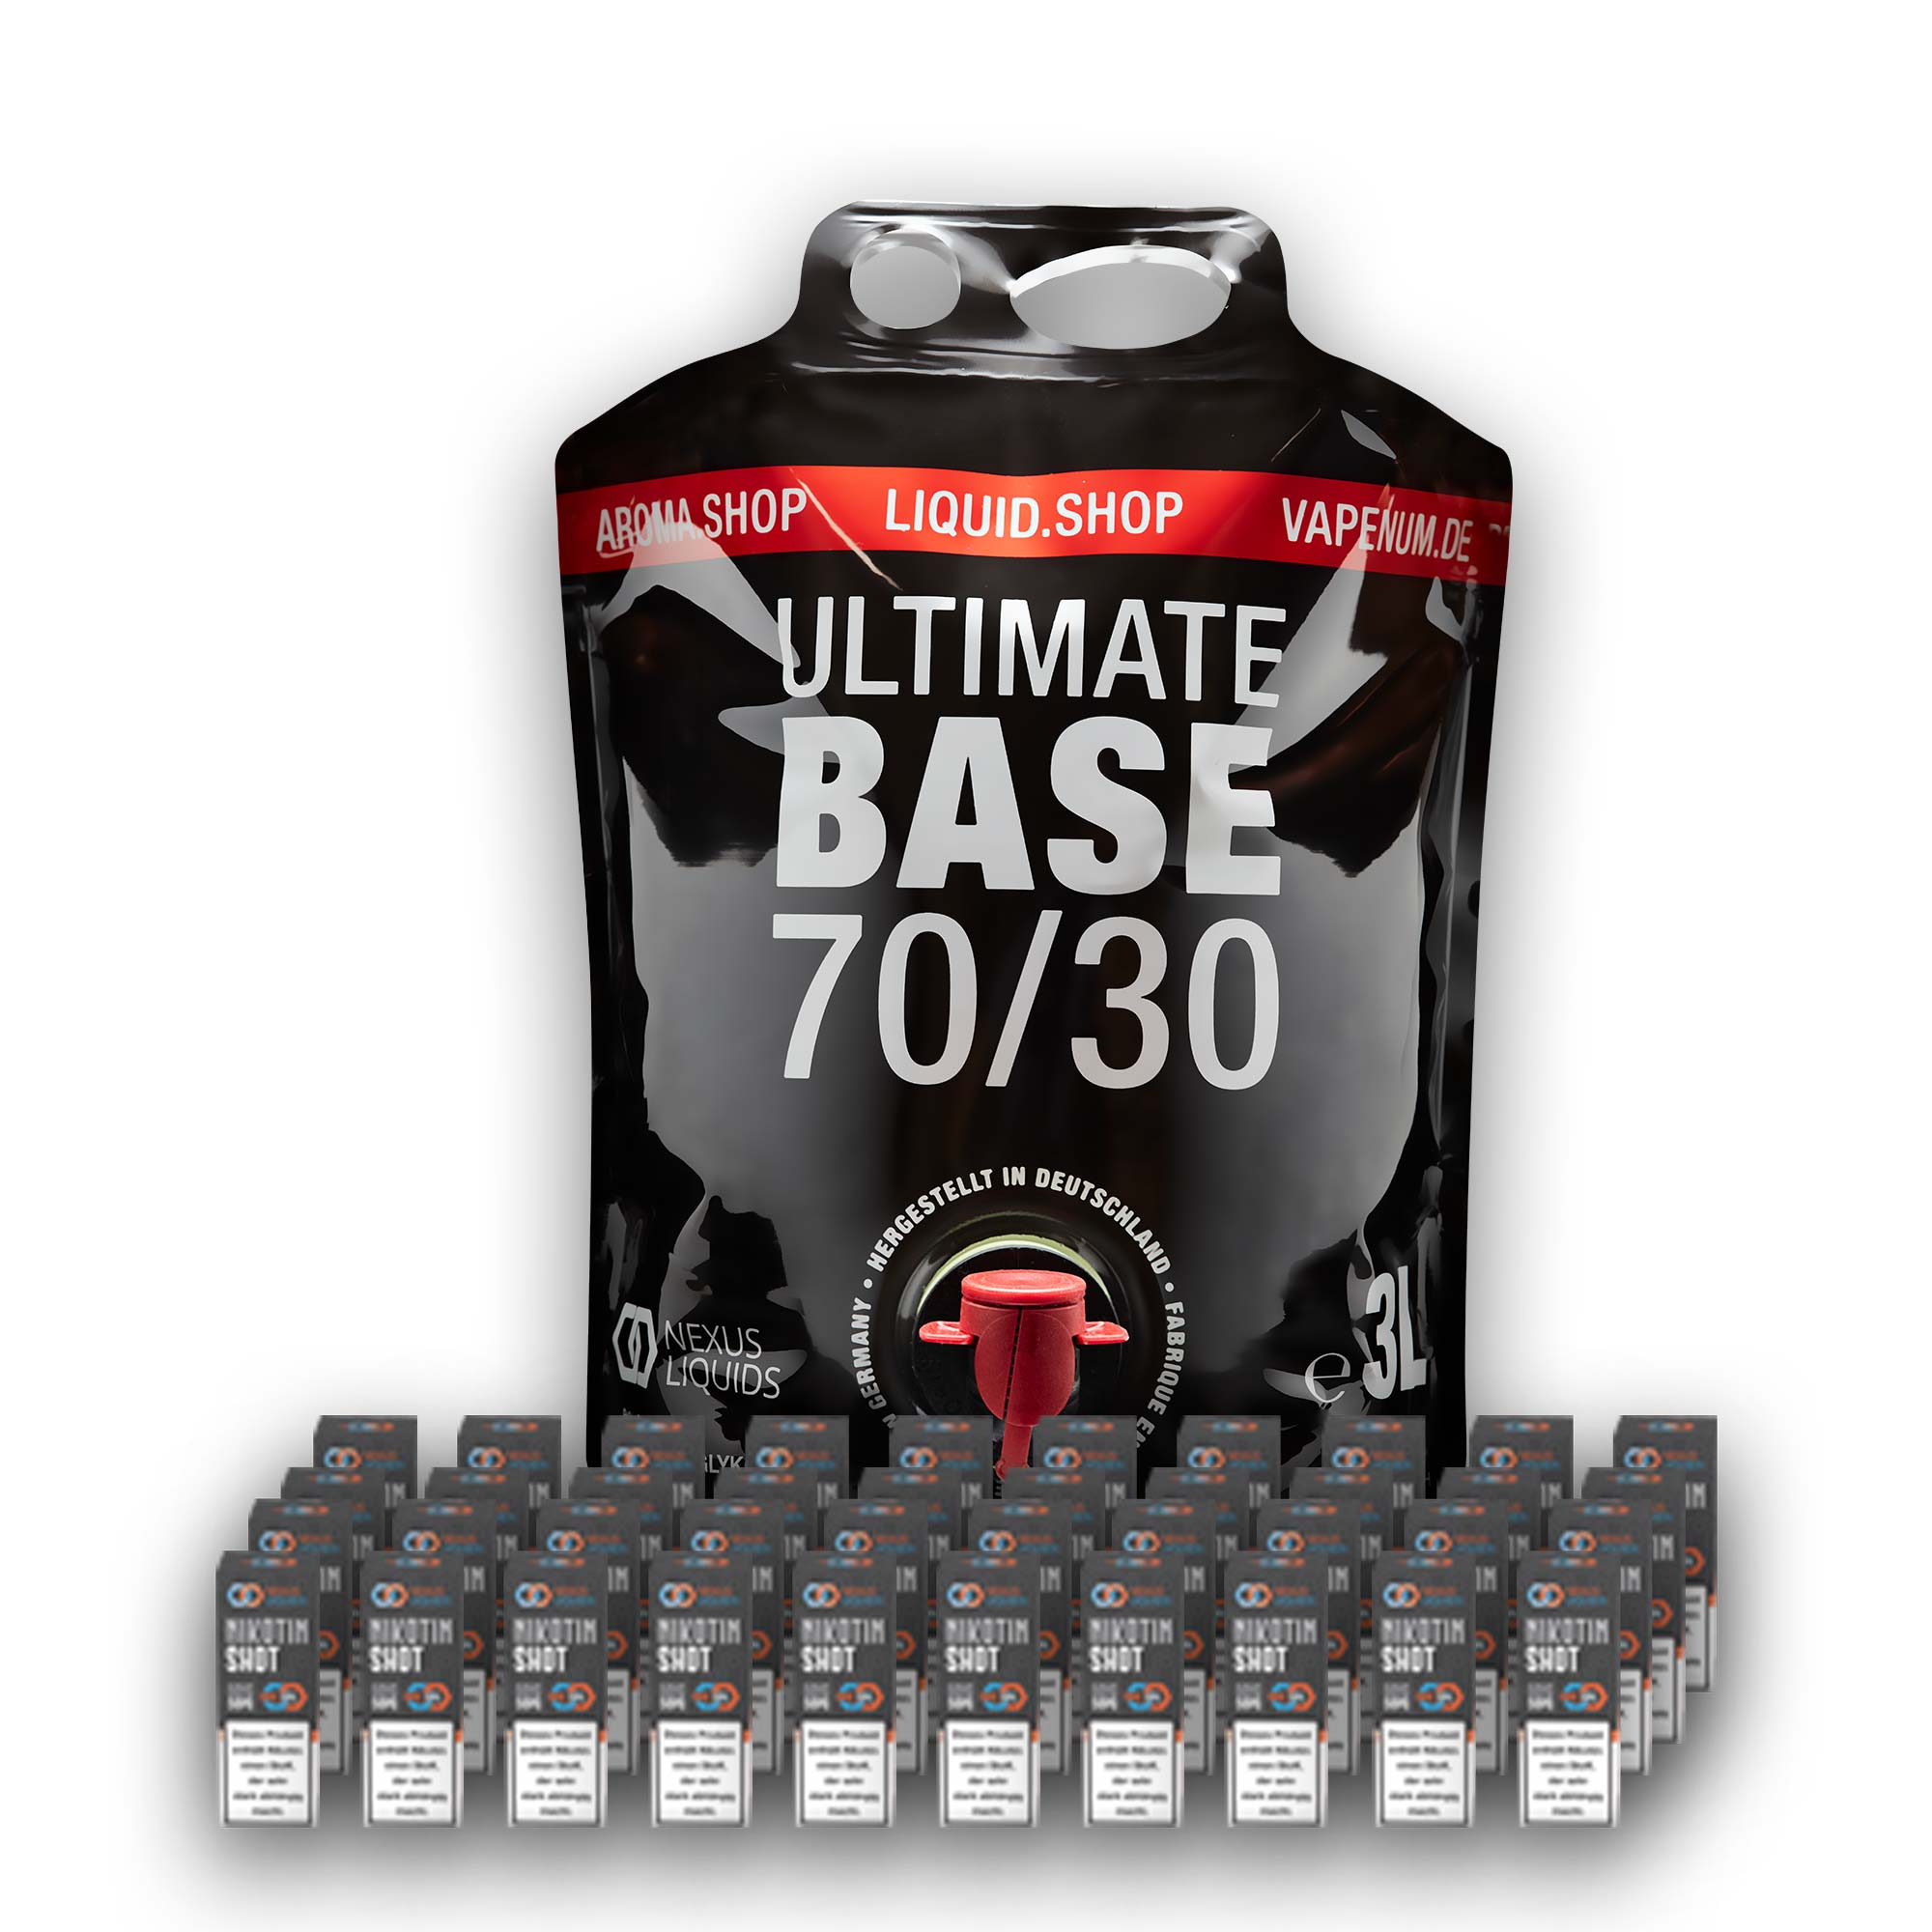 3L Ultimate Base (70/30) inklusive 40 Nik Shots 18mg